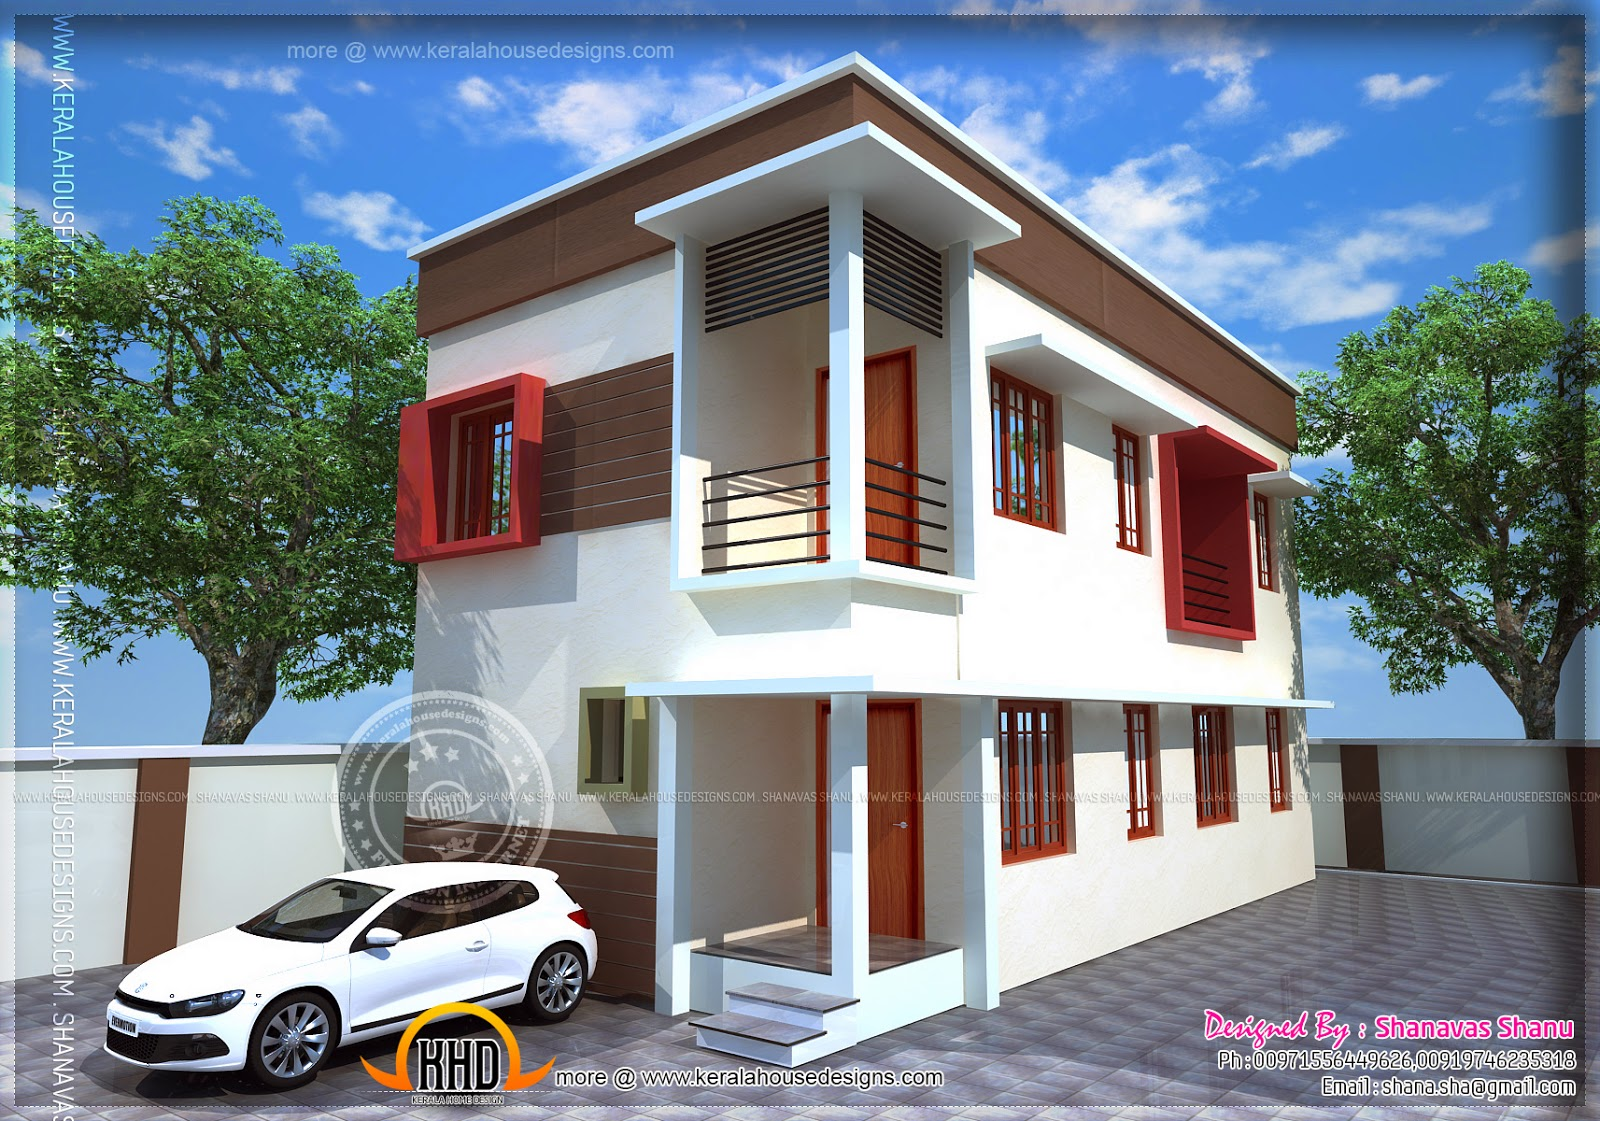 Small Plot Villa In 2 75 Cents Of Land Kerala Home